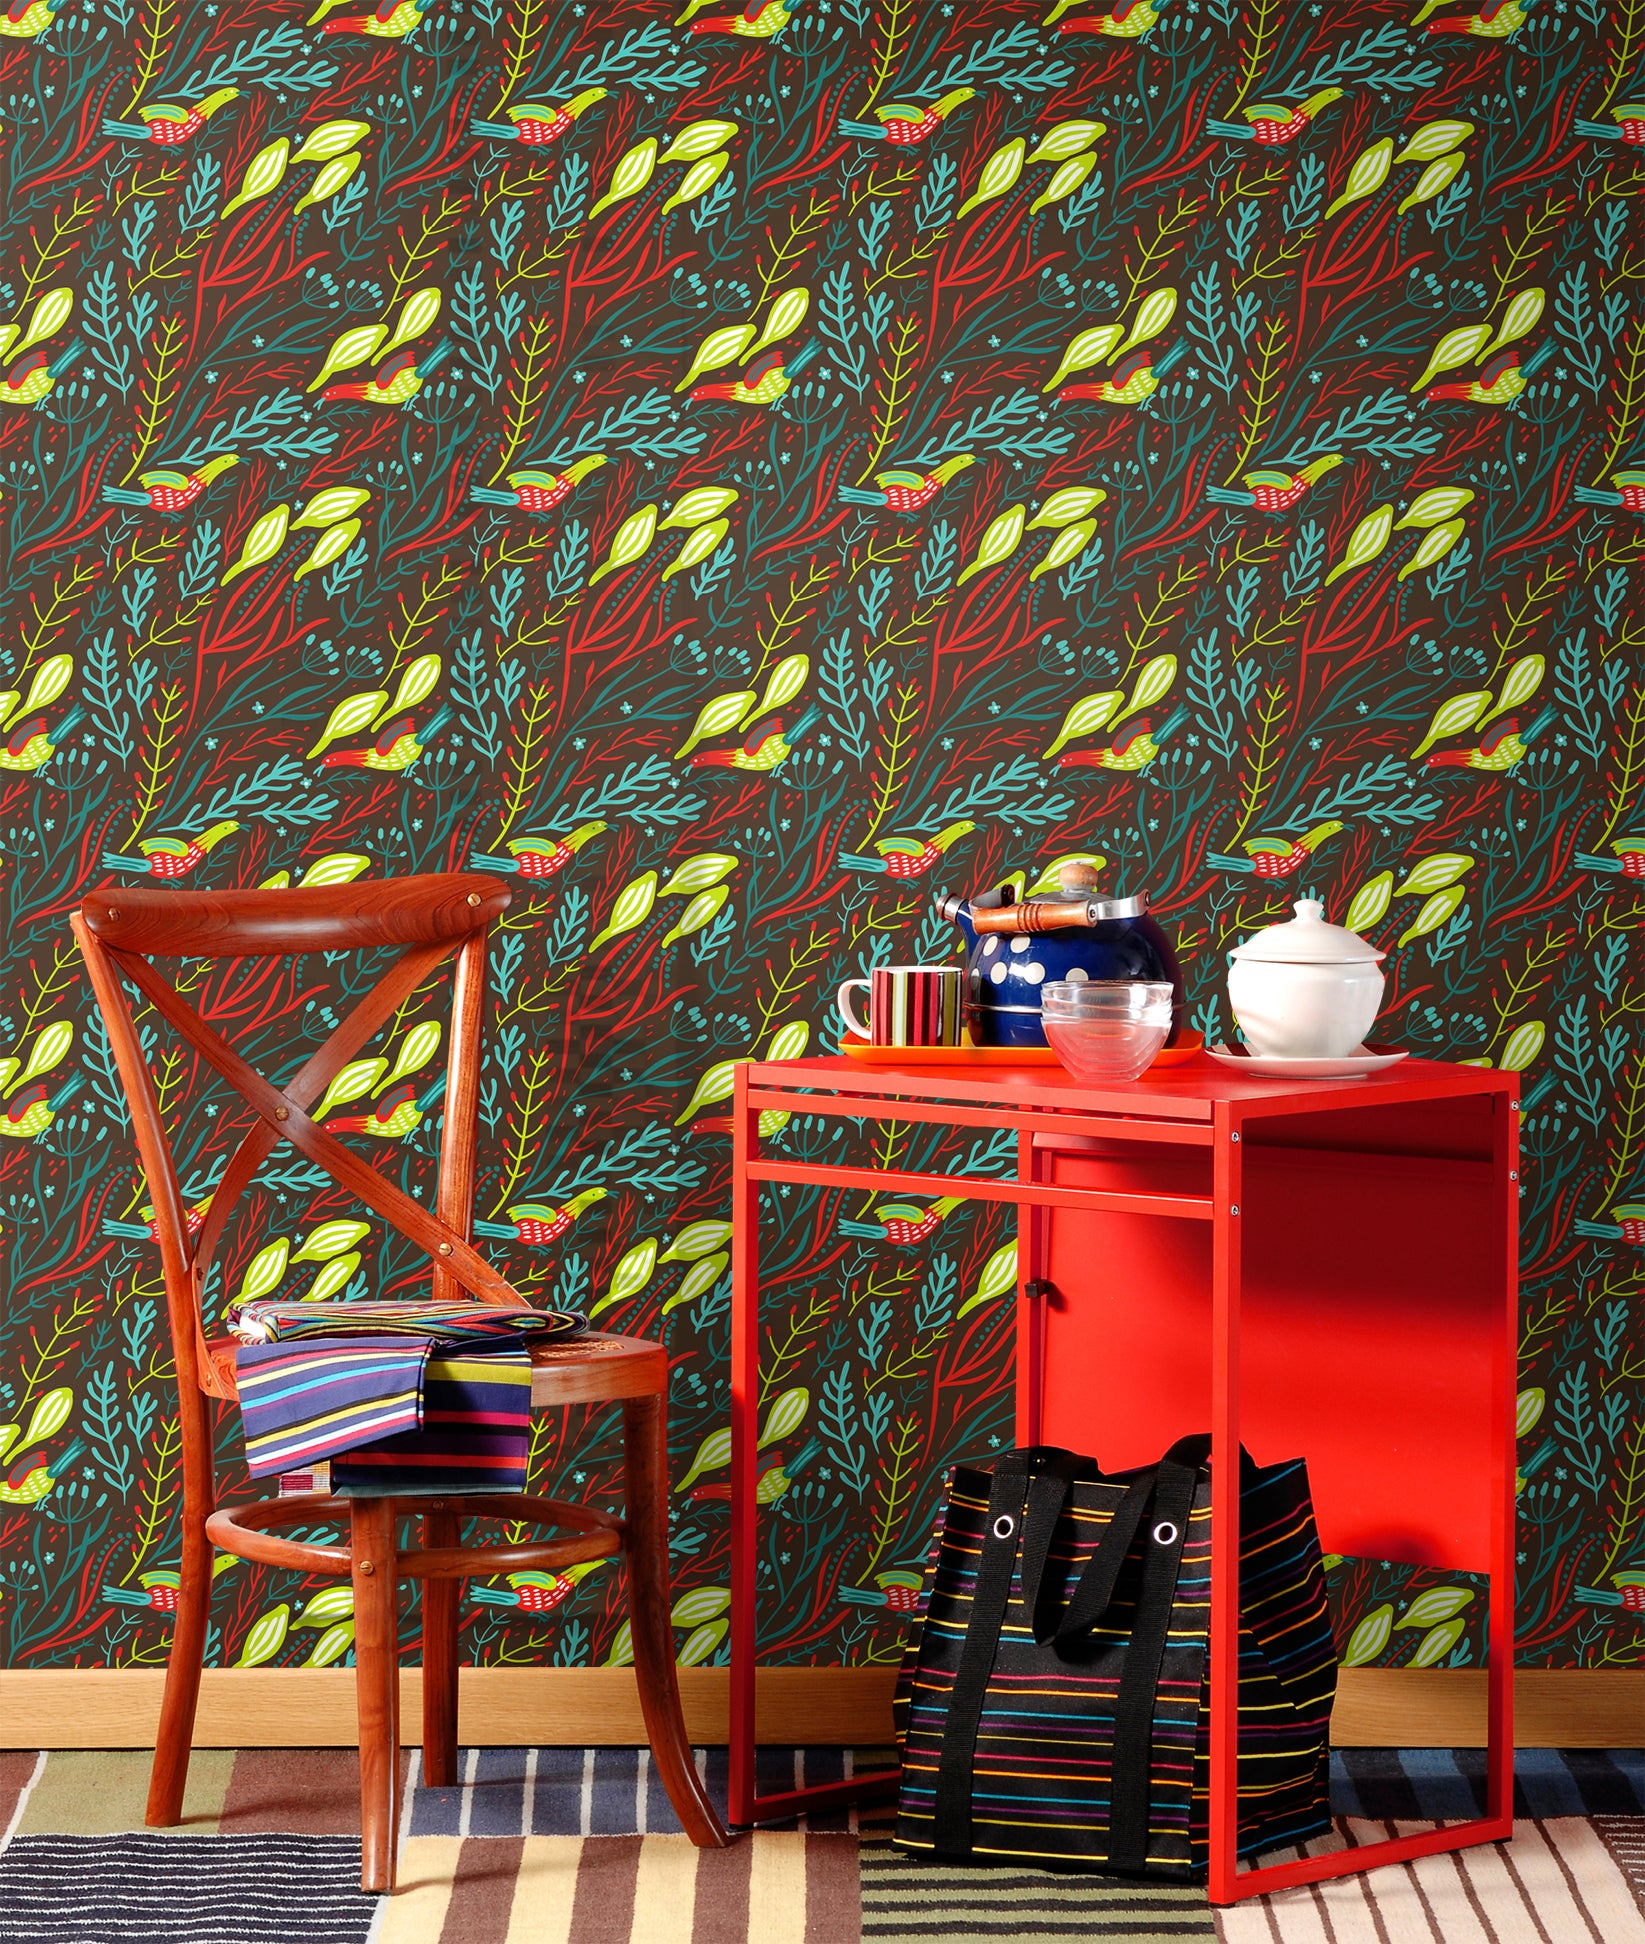 Vivid colored bird dancing in plants removable wallpaper behind red writing desk with chair and natural rug